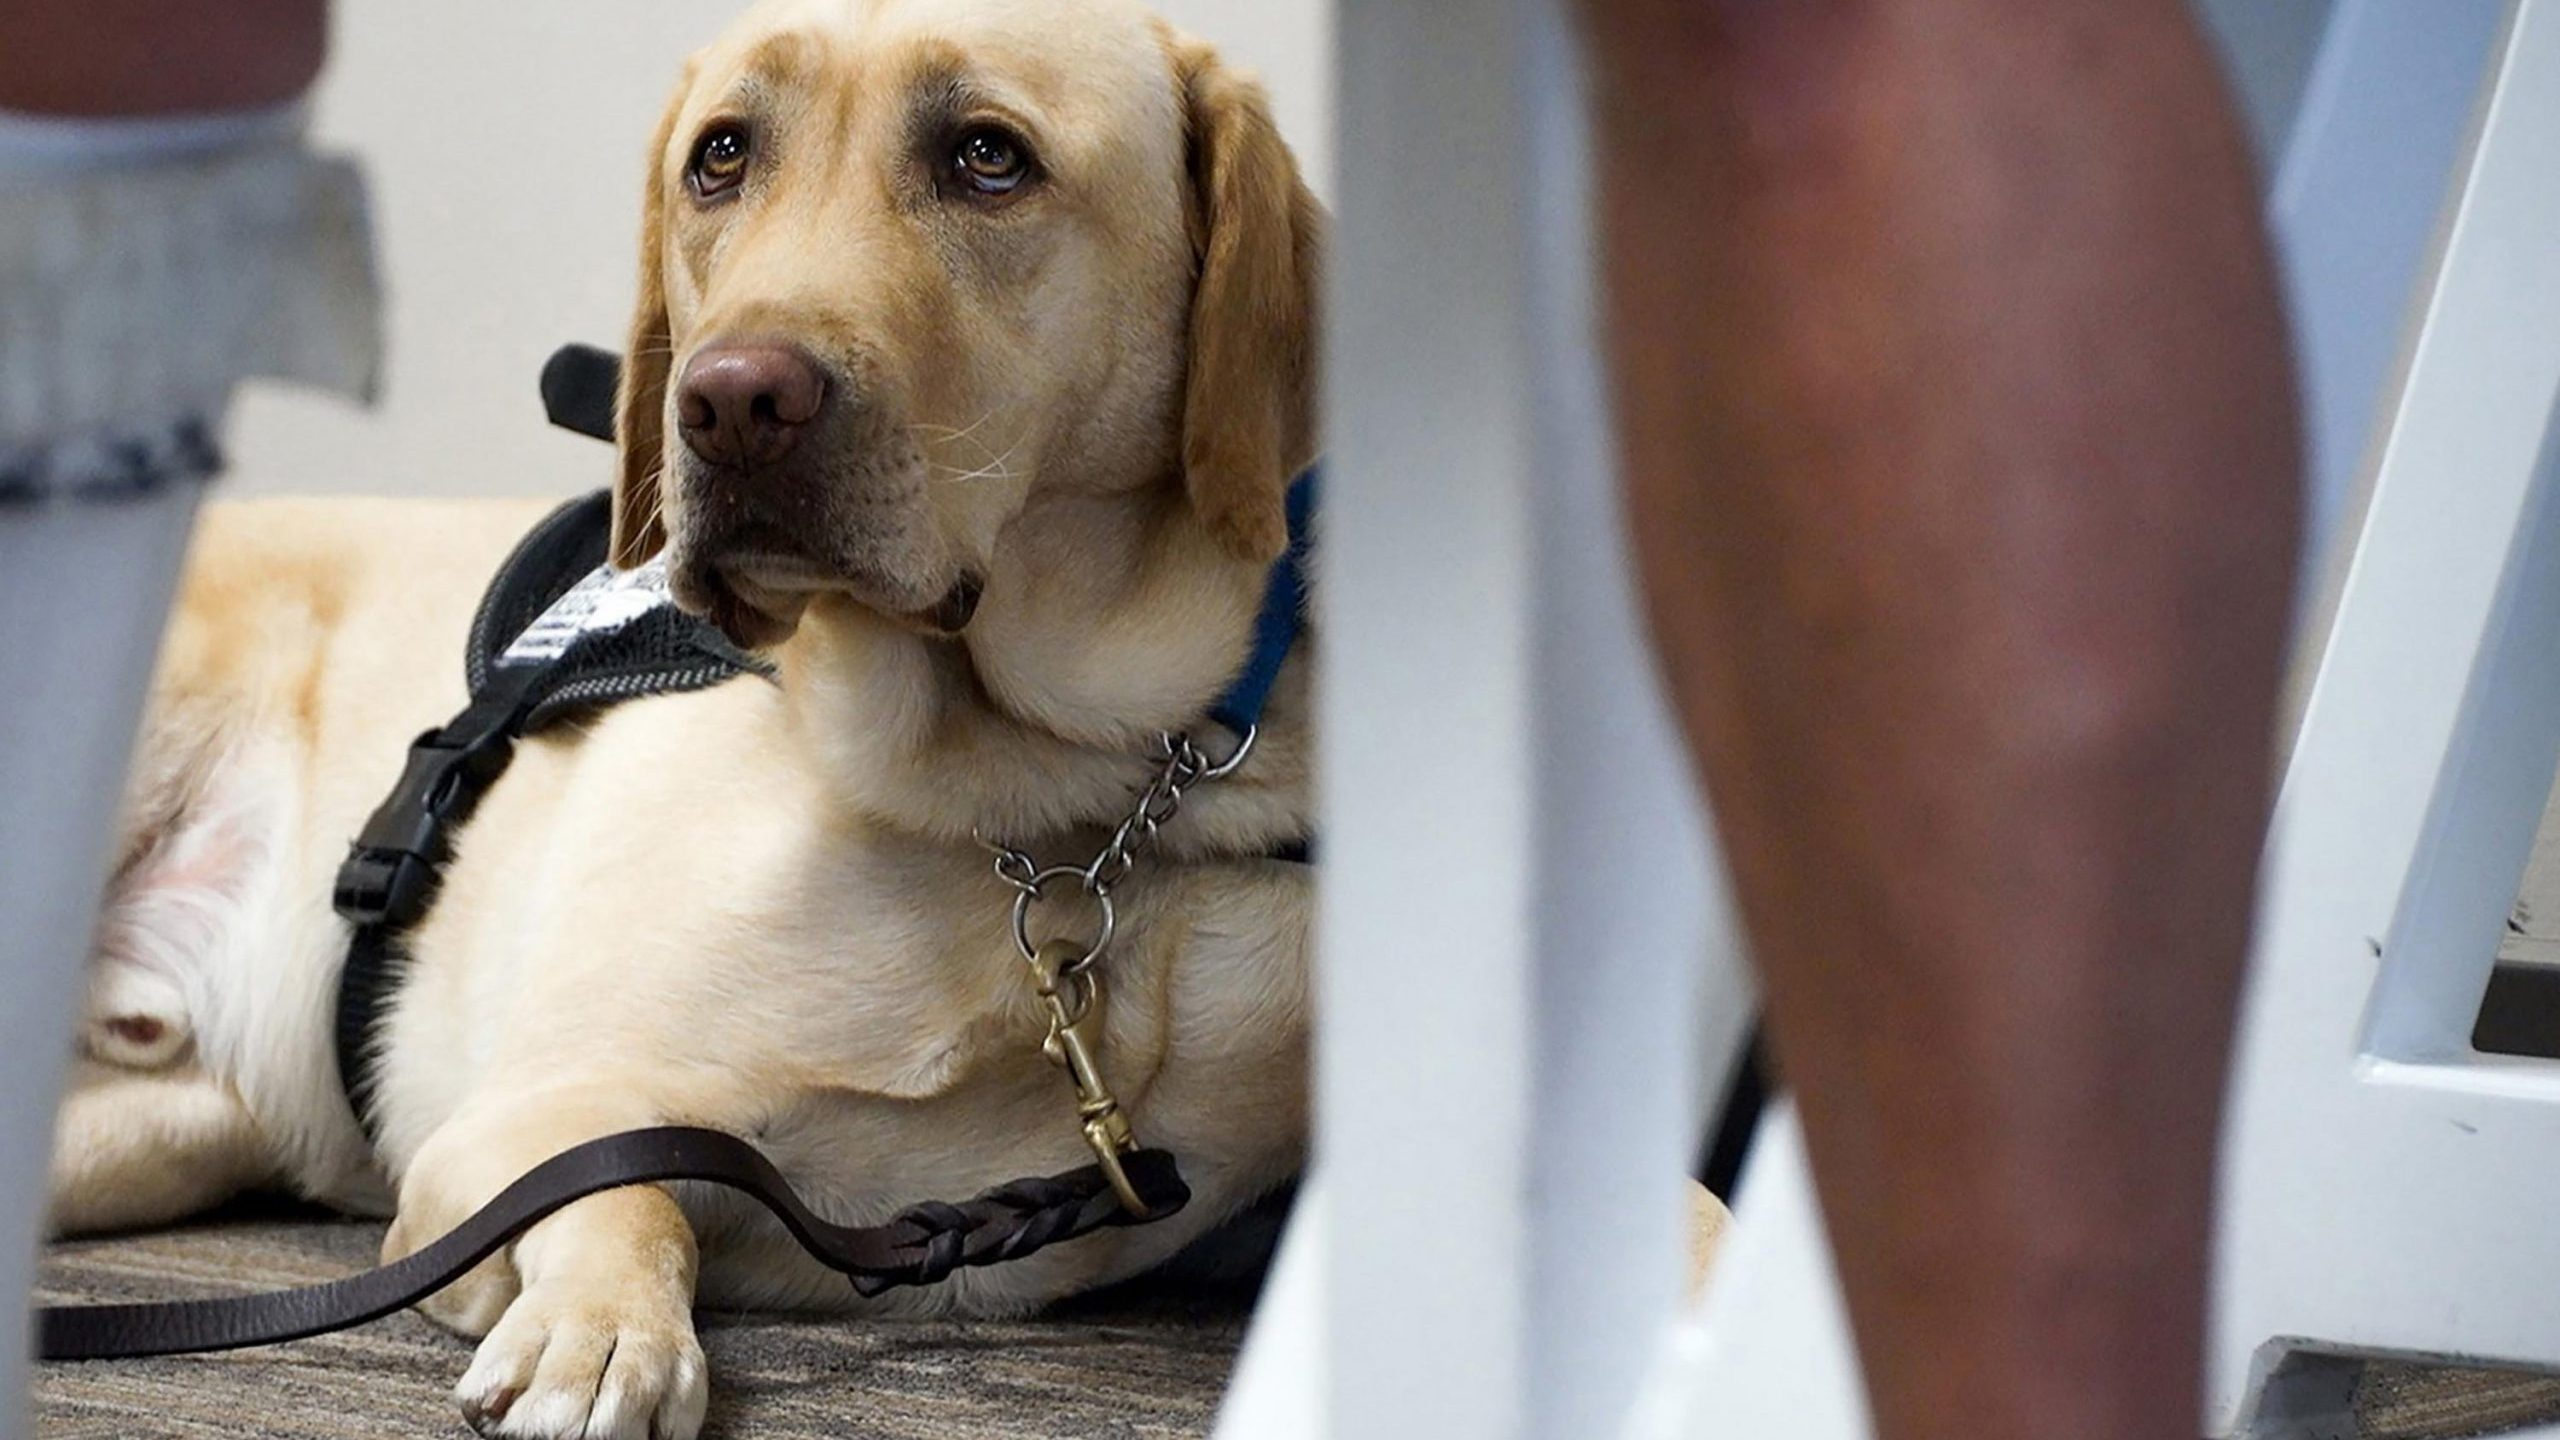 The concept of pets on planes has become a hot-button issue of late as emotional support animals have become more prominent than ever. (Shelly Yang/Kansas City Star/Tribune News Service via Getty Images)